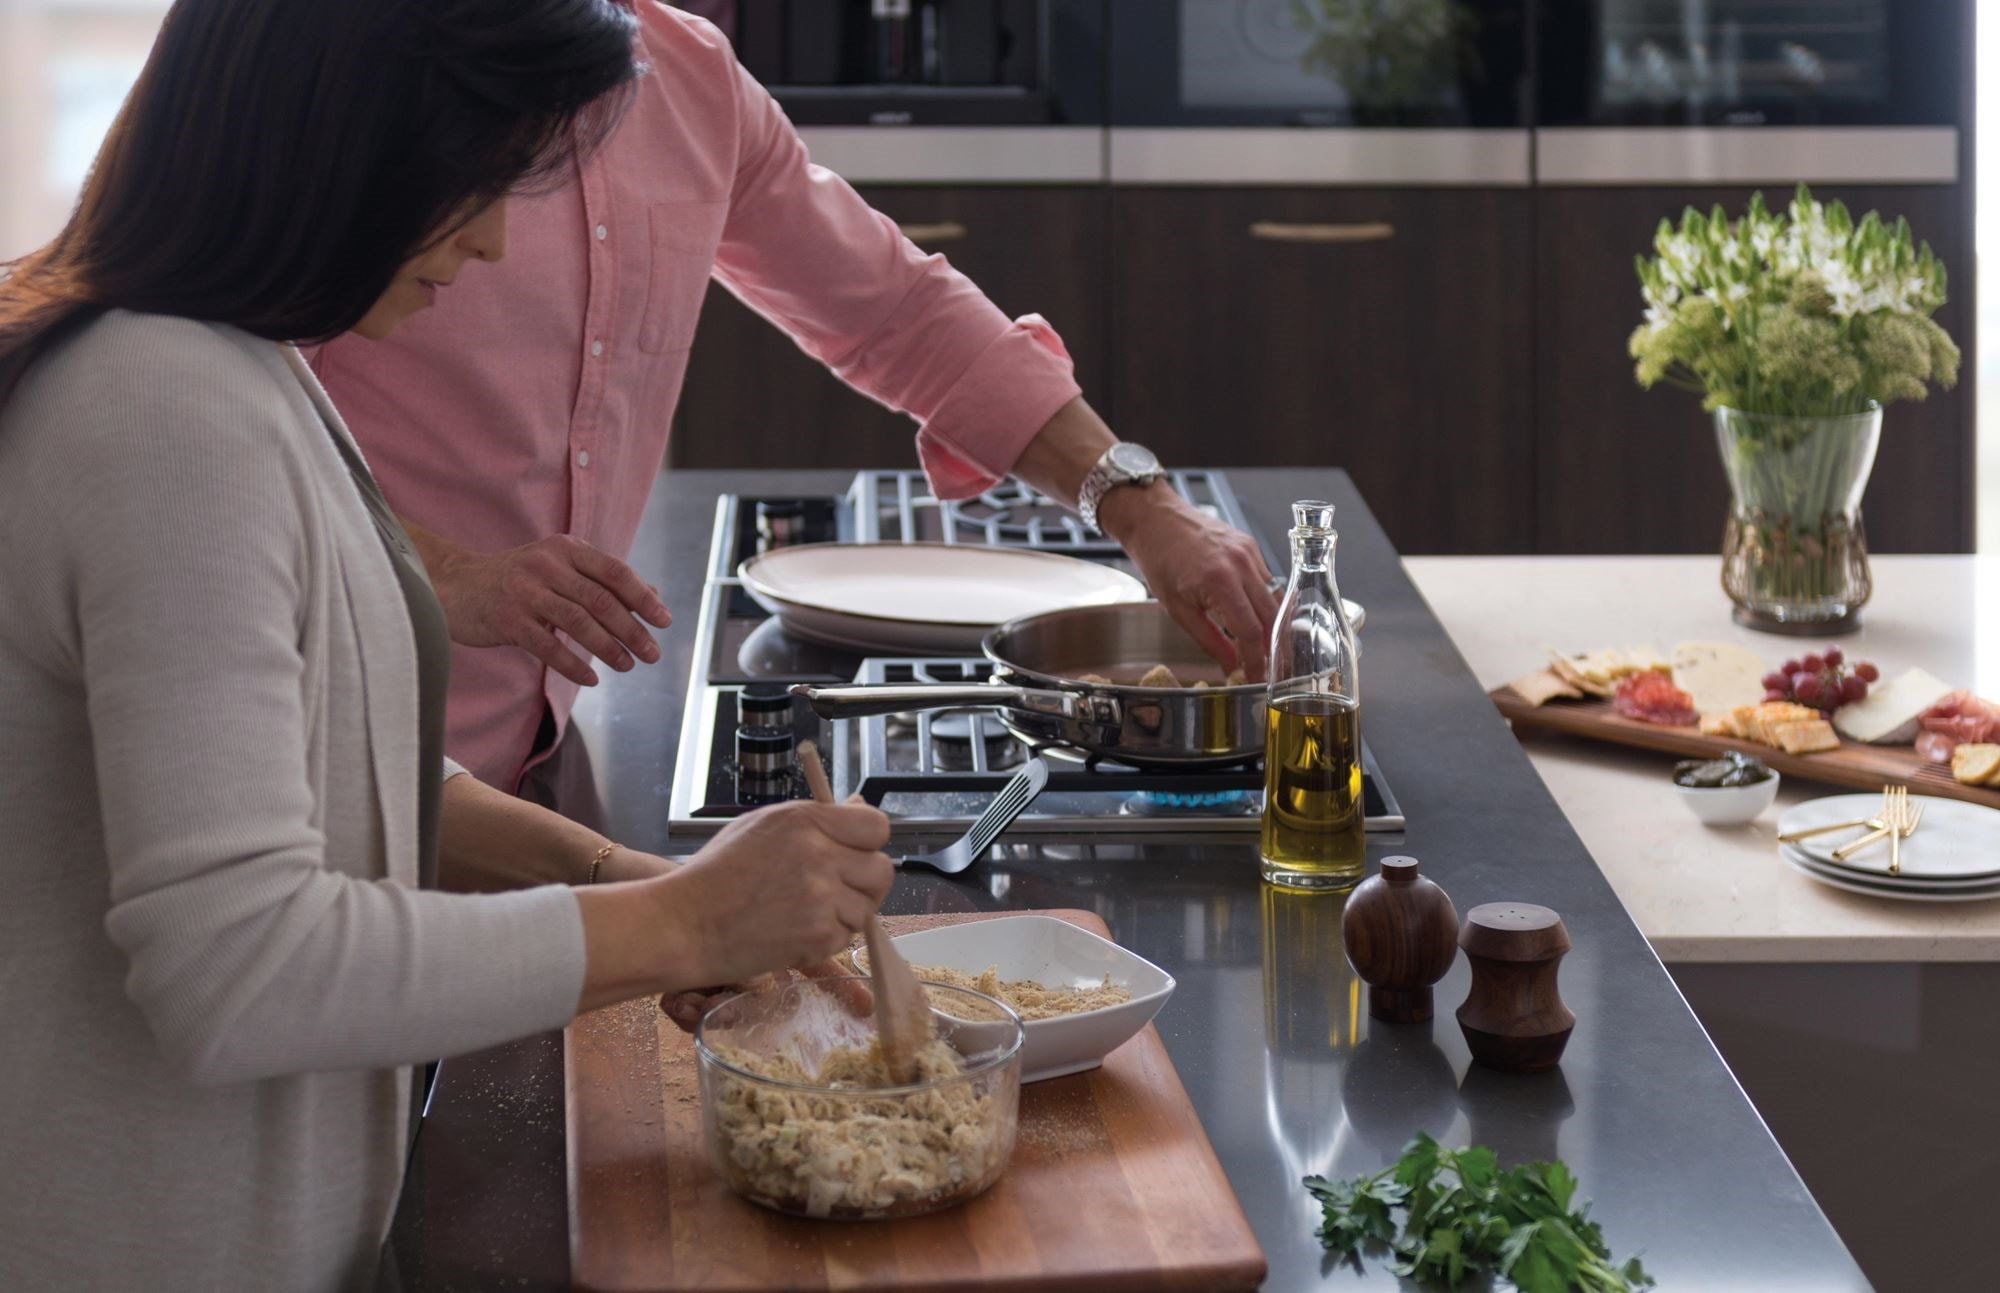 Turn any countertop into a cooking area with Wolf cooktop modules. Explore our fryer, grill, steamer, gas and electric cooktop modules.